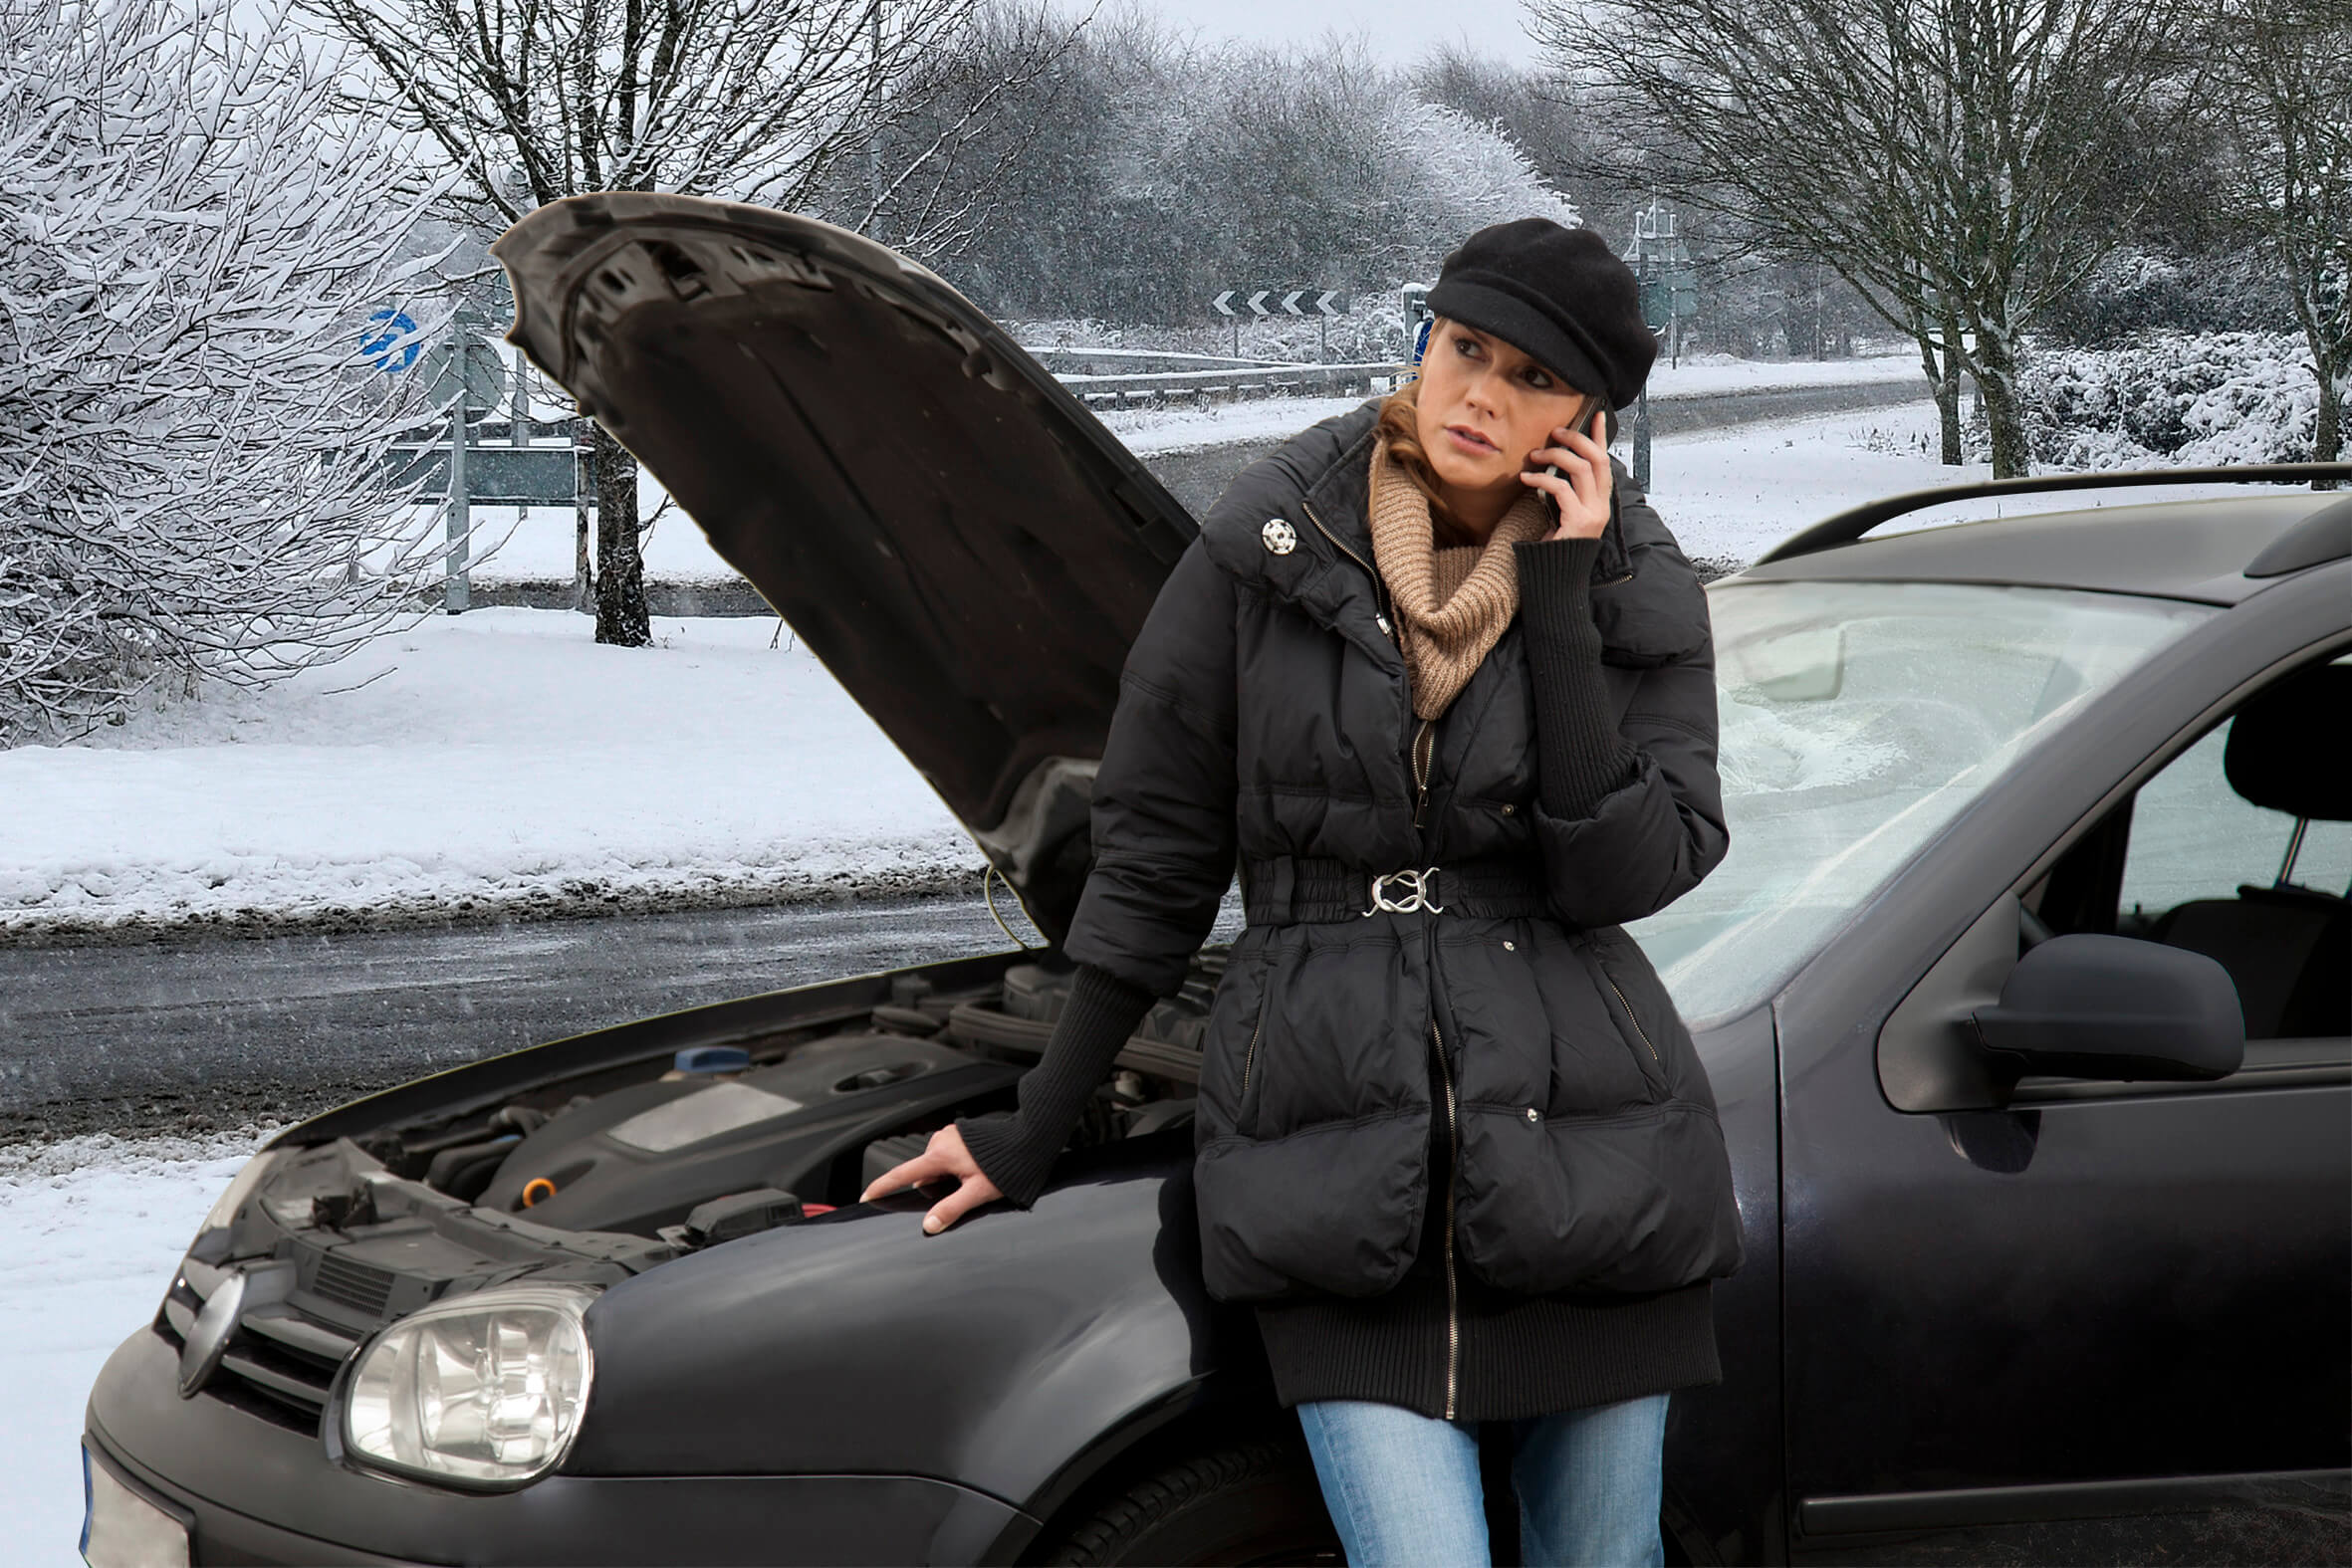 broken down black car with bonnet raised and concerned female driver on mobile phone, car battery issues